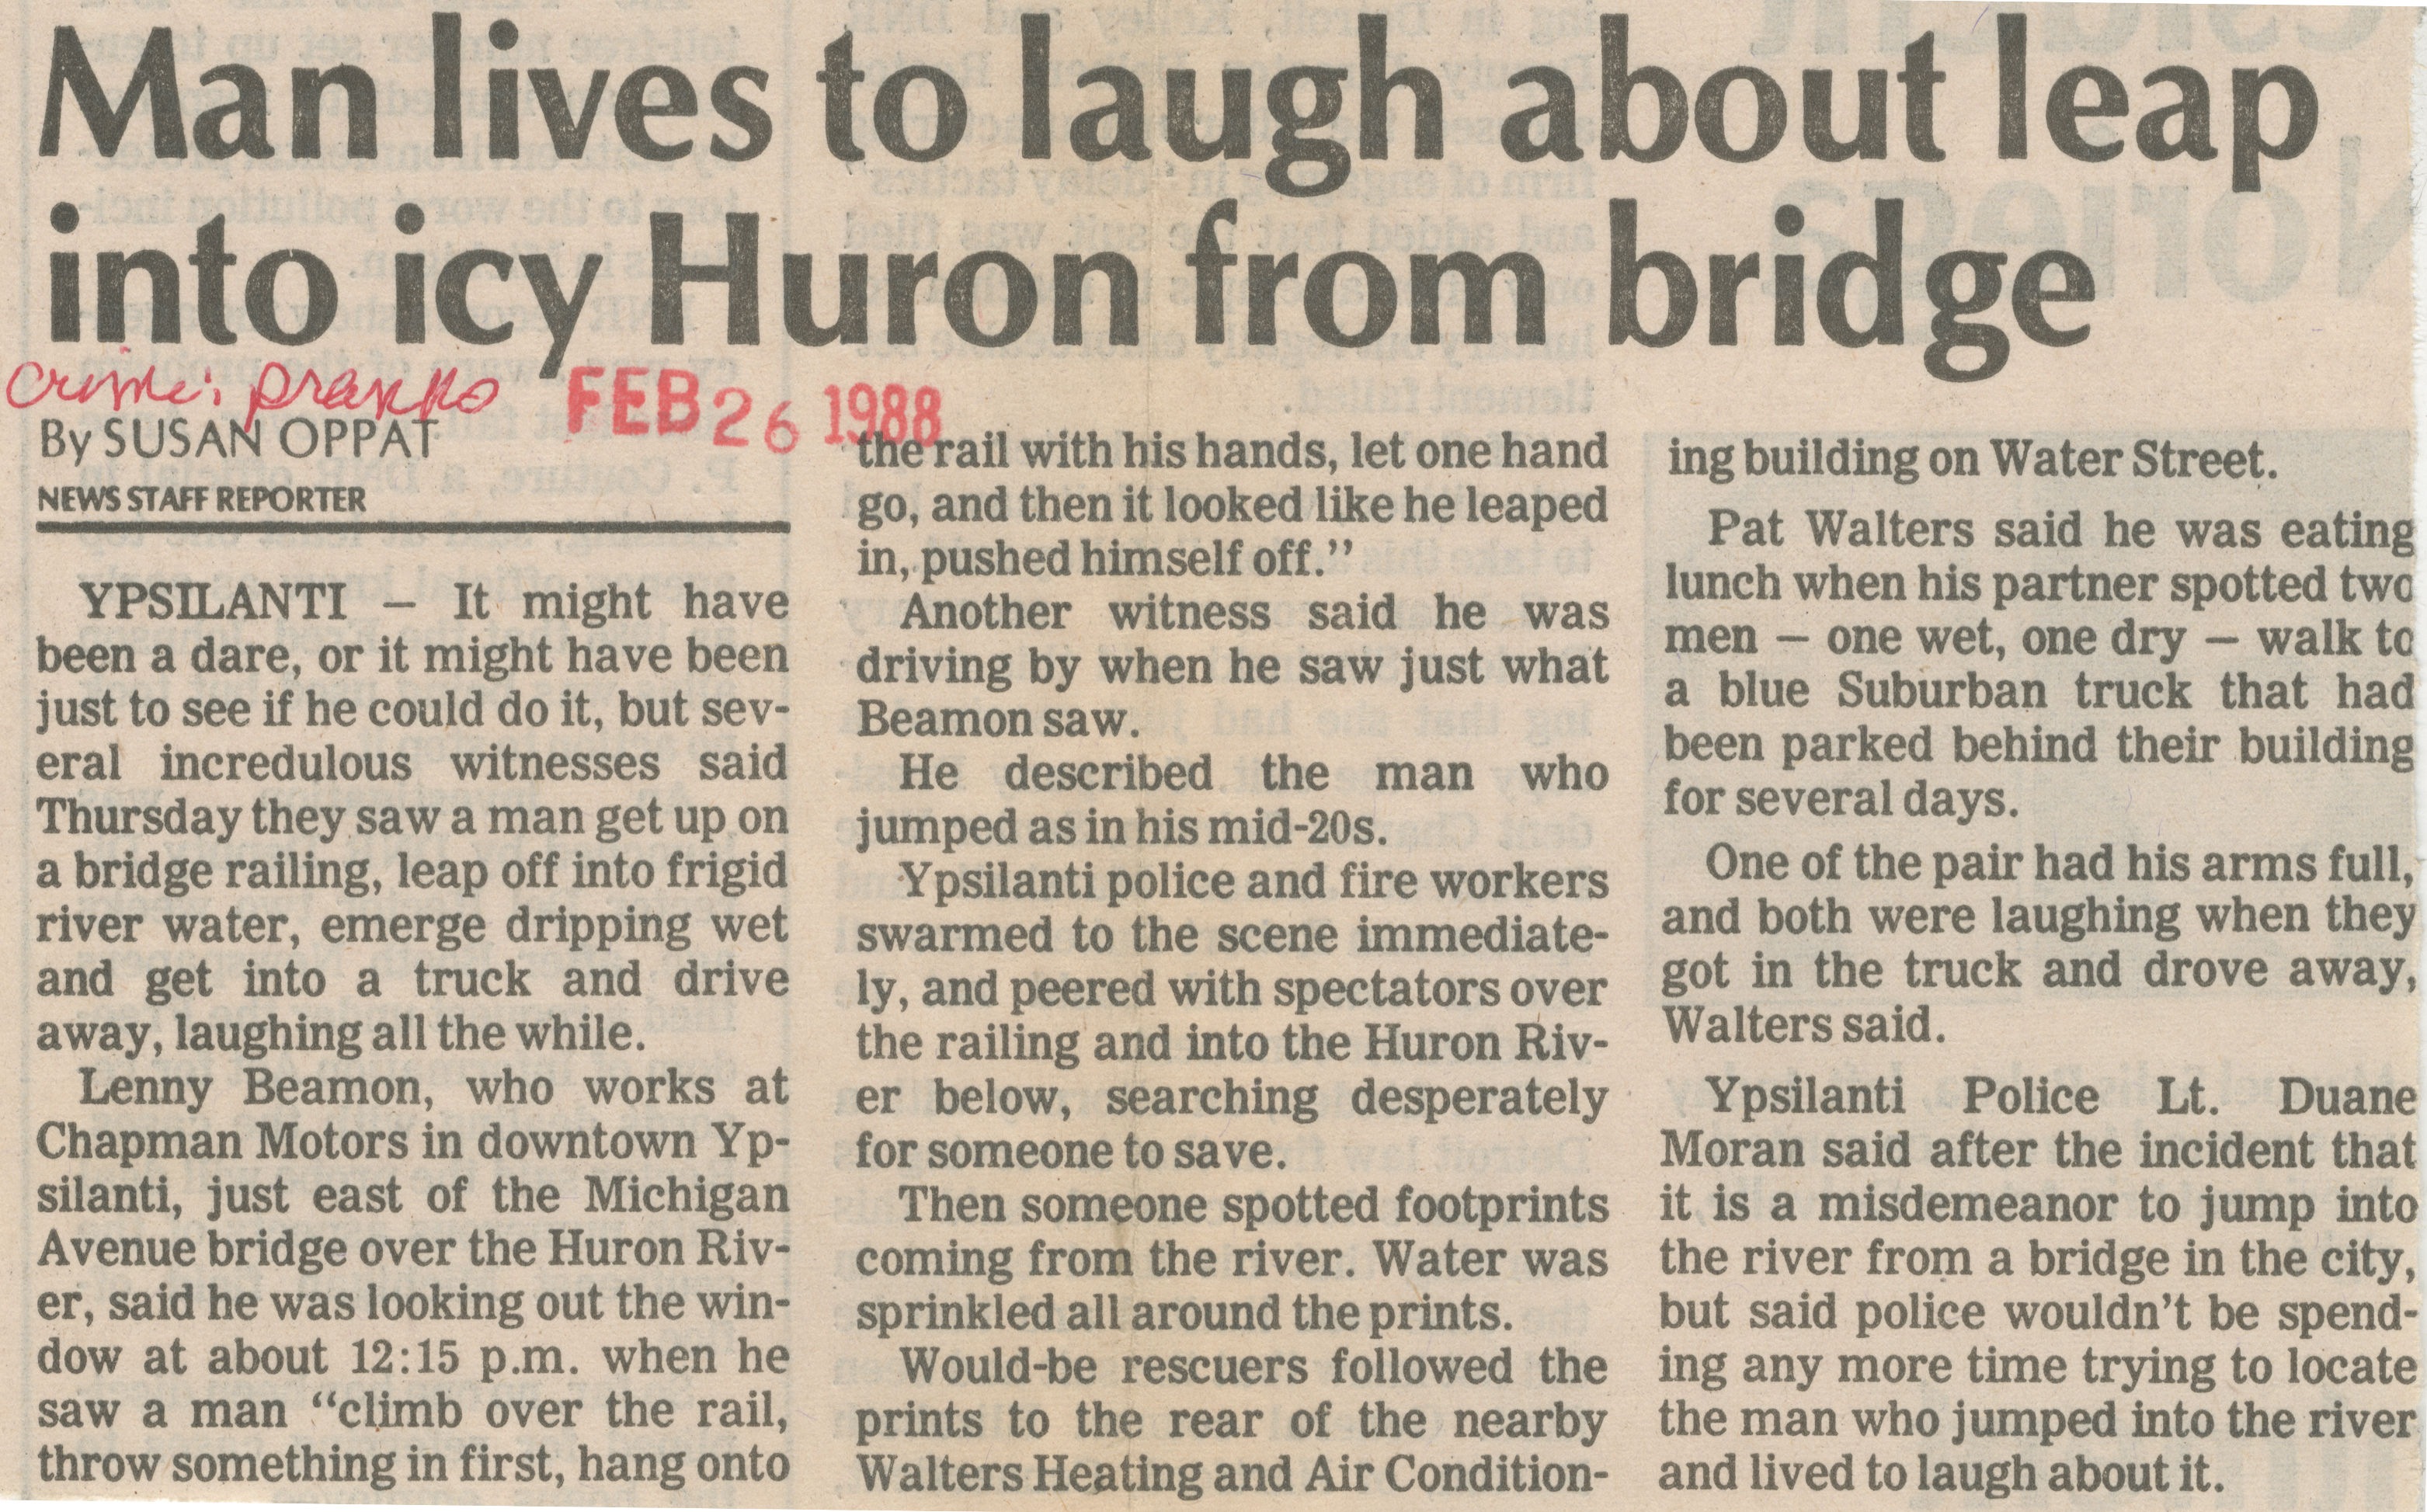 Man lives to laugh about leap into icy Huron from bridge image